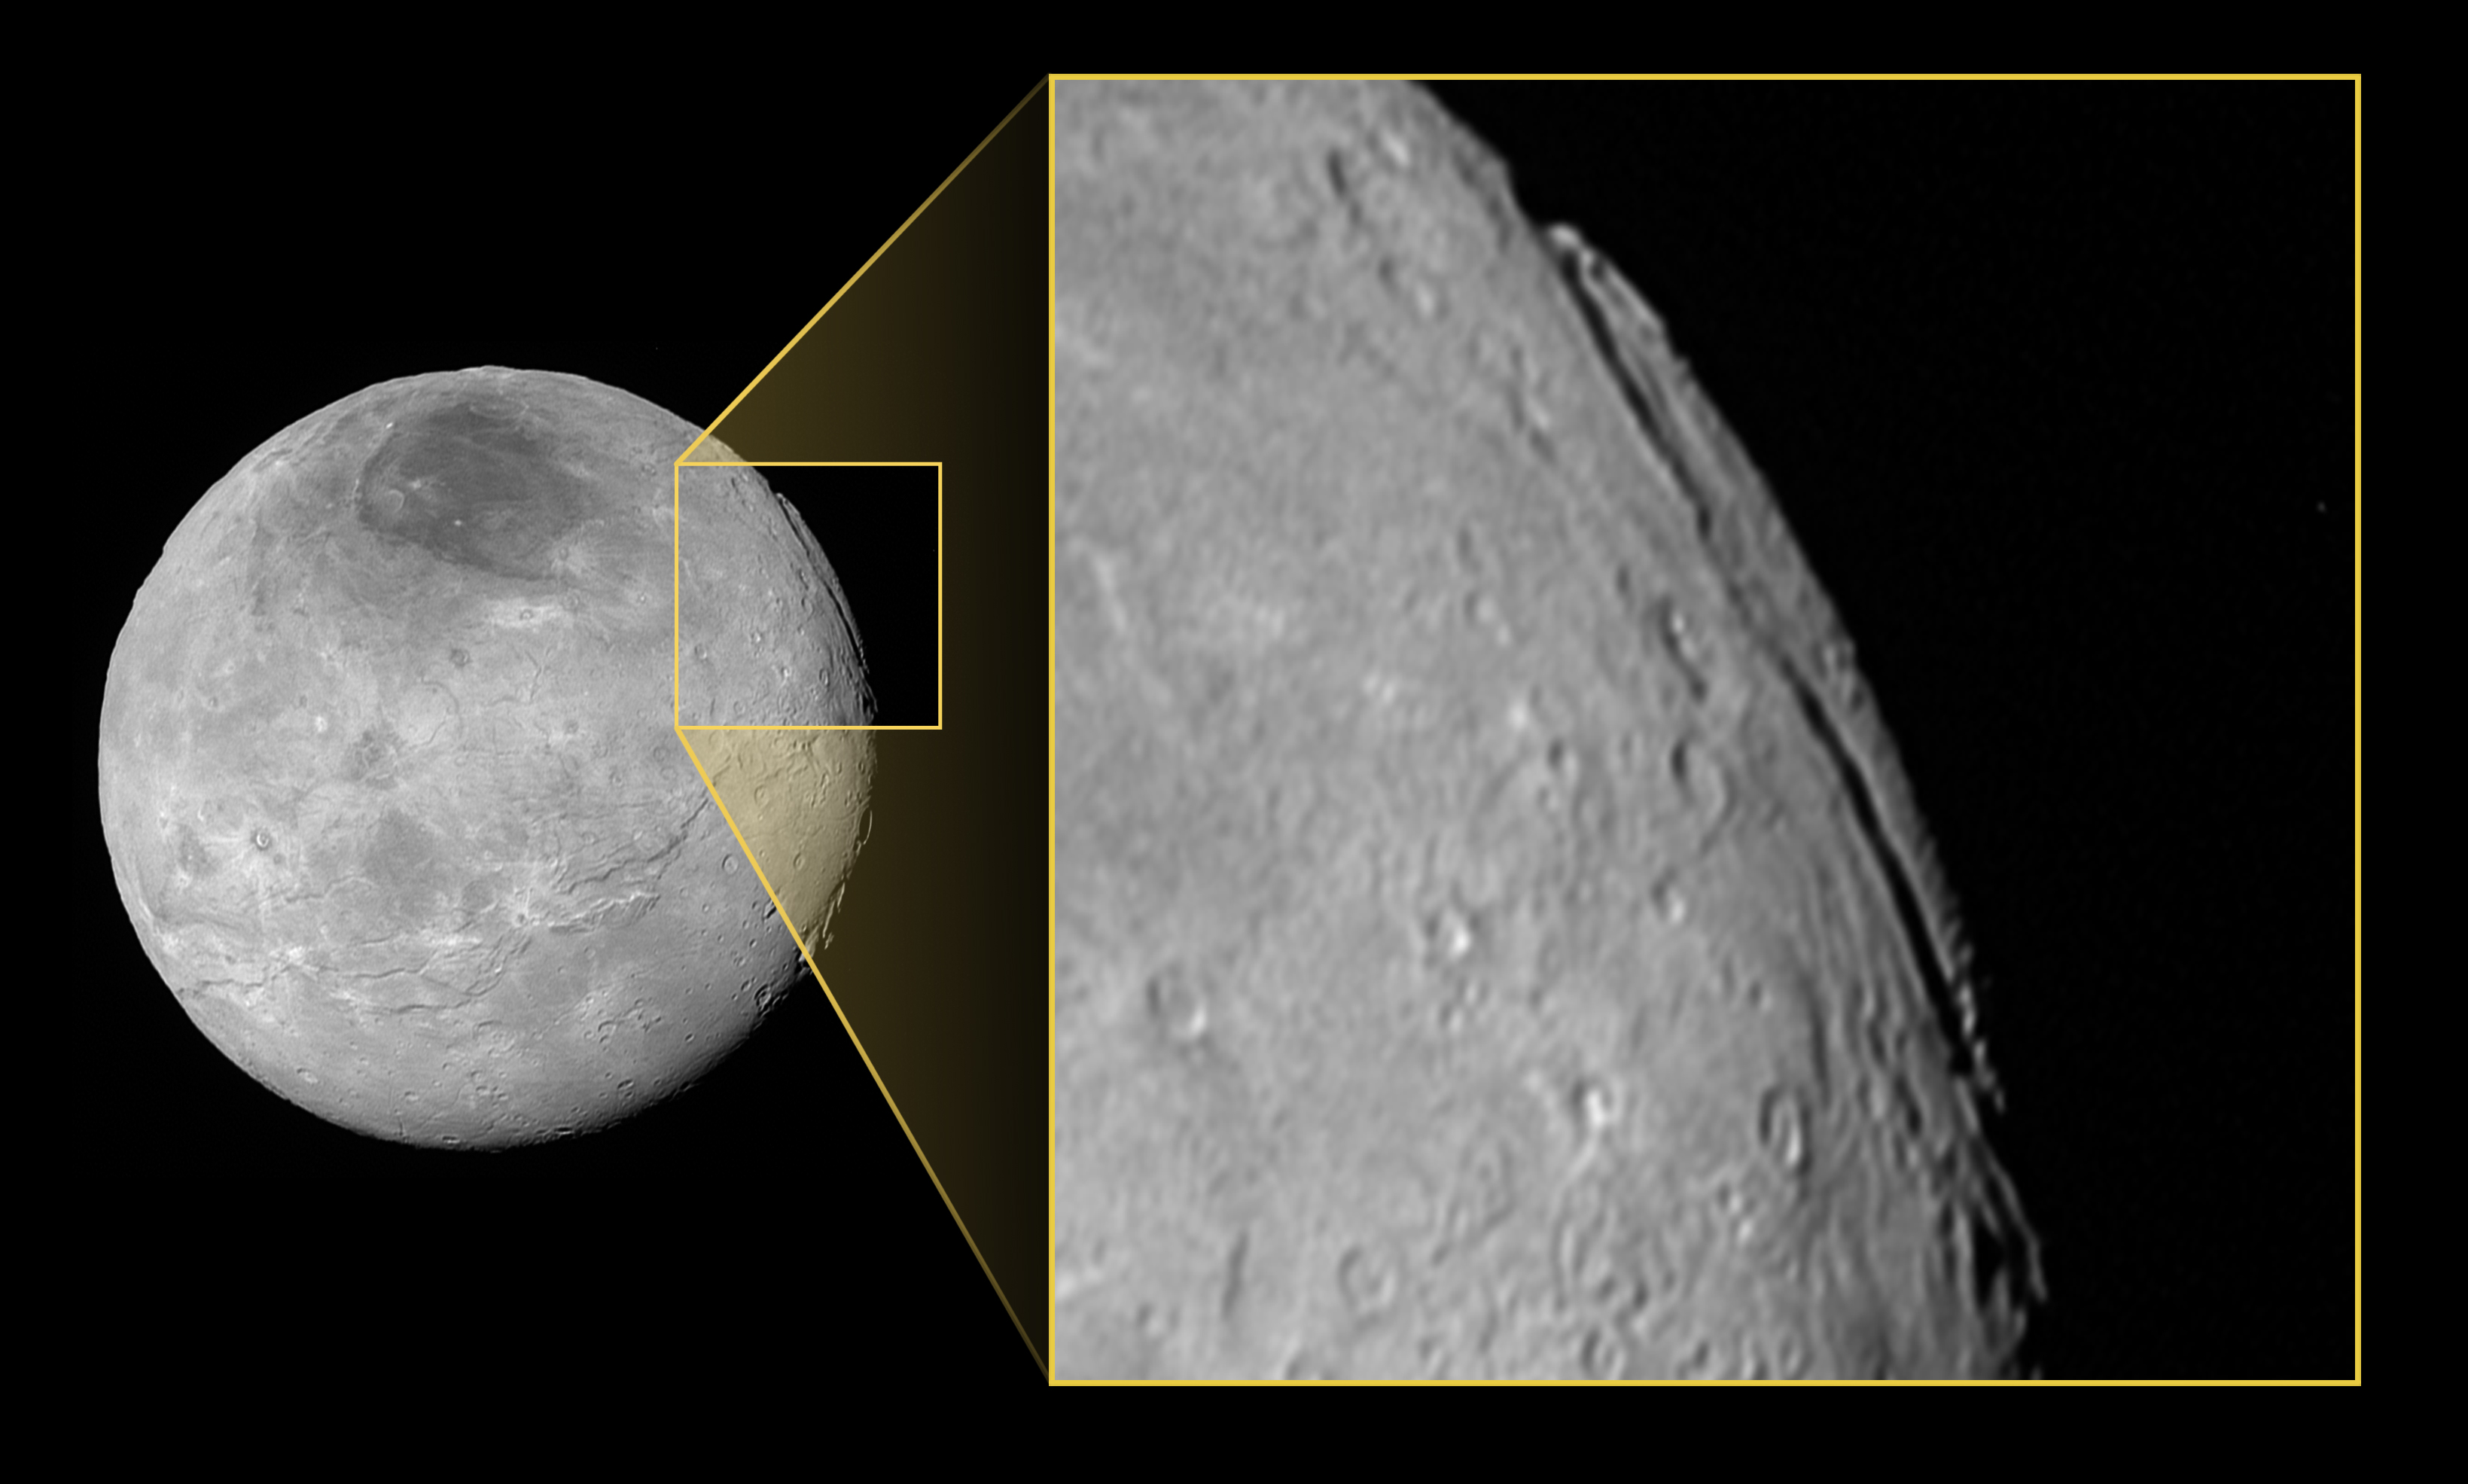 Charon Moon: Pluto's Moon Charon May Have The Tallest Cliffs In The